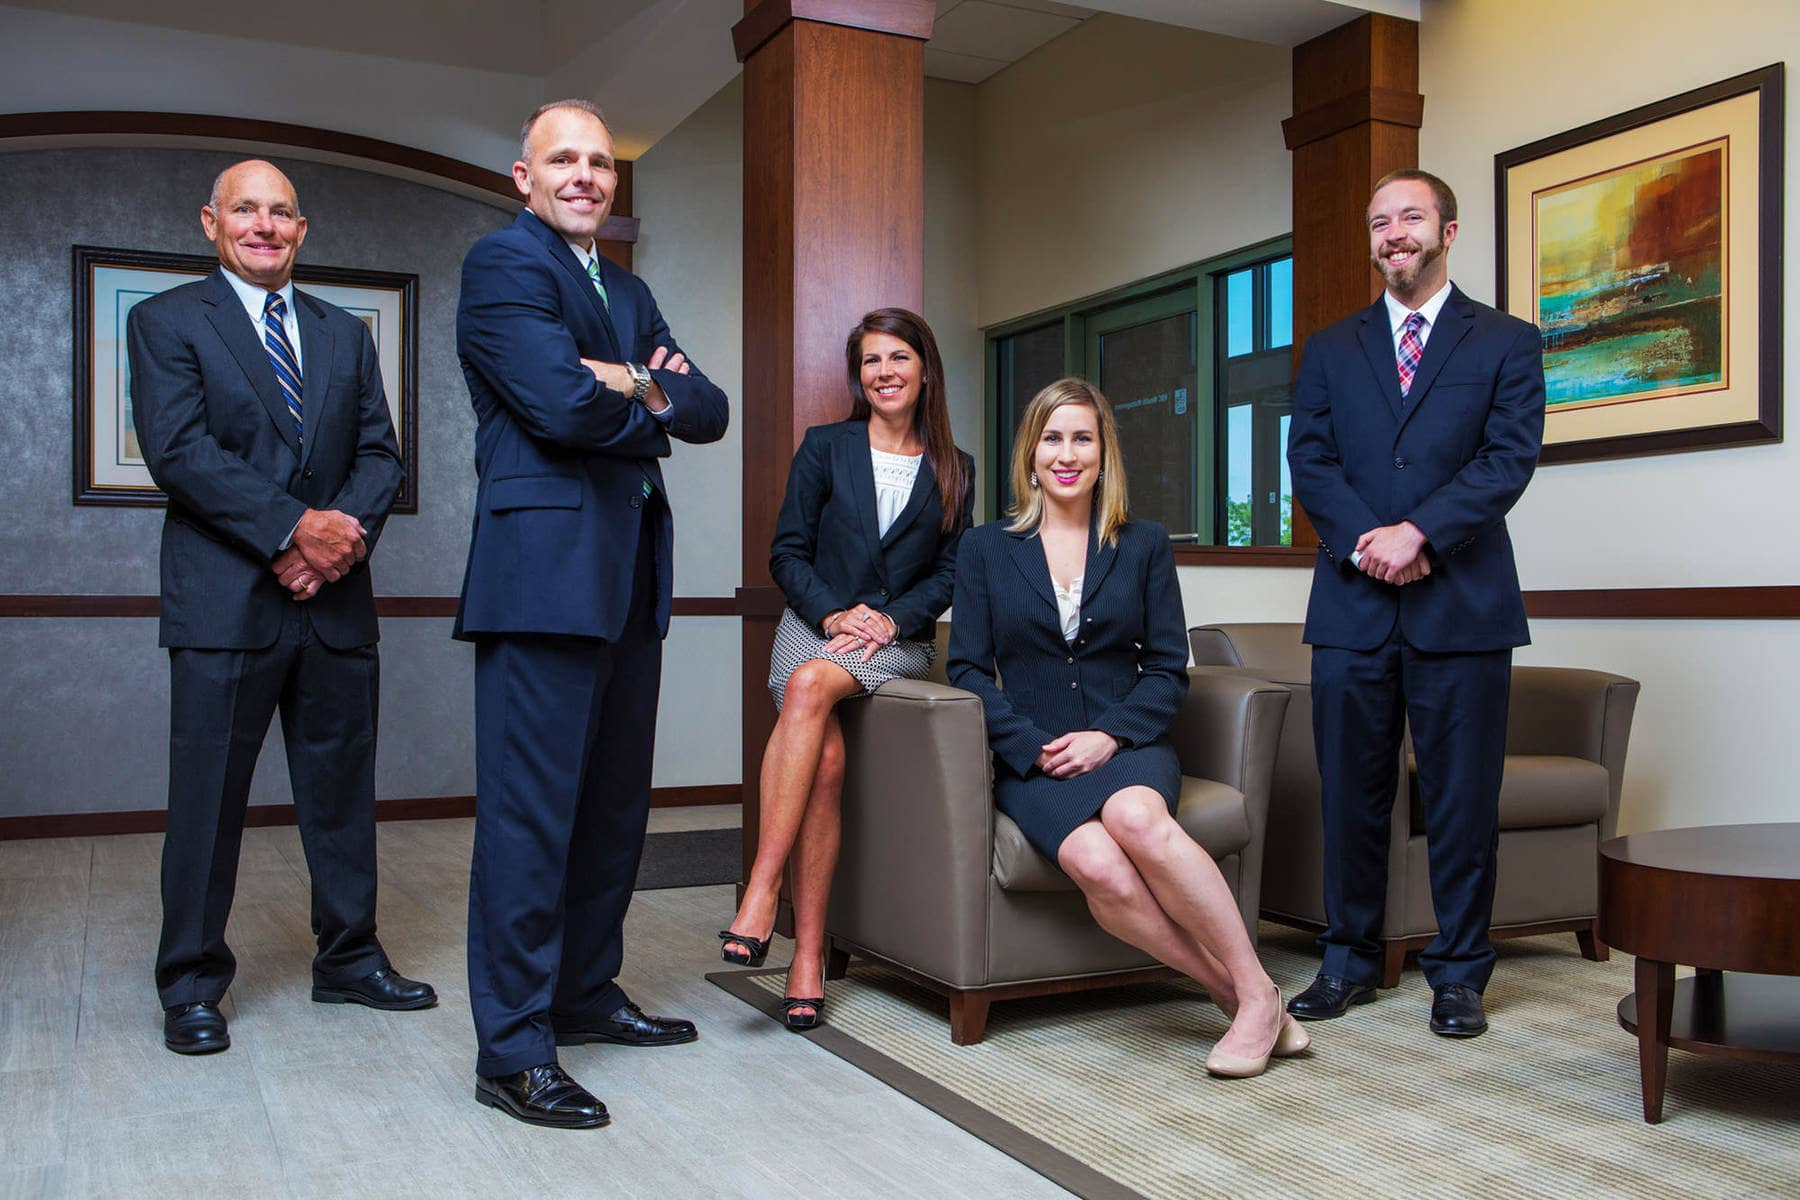 RBC Wealth Management Team Portrait by Kelly Heck Photography Westminster Maryland